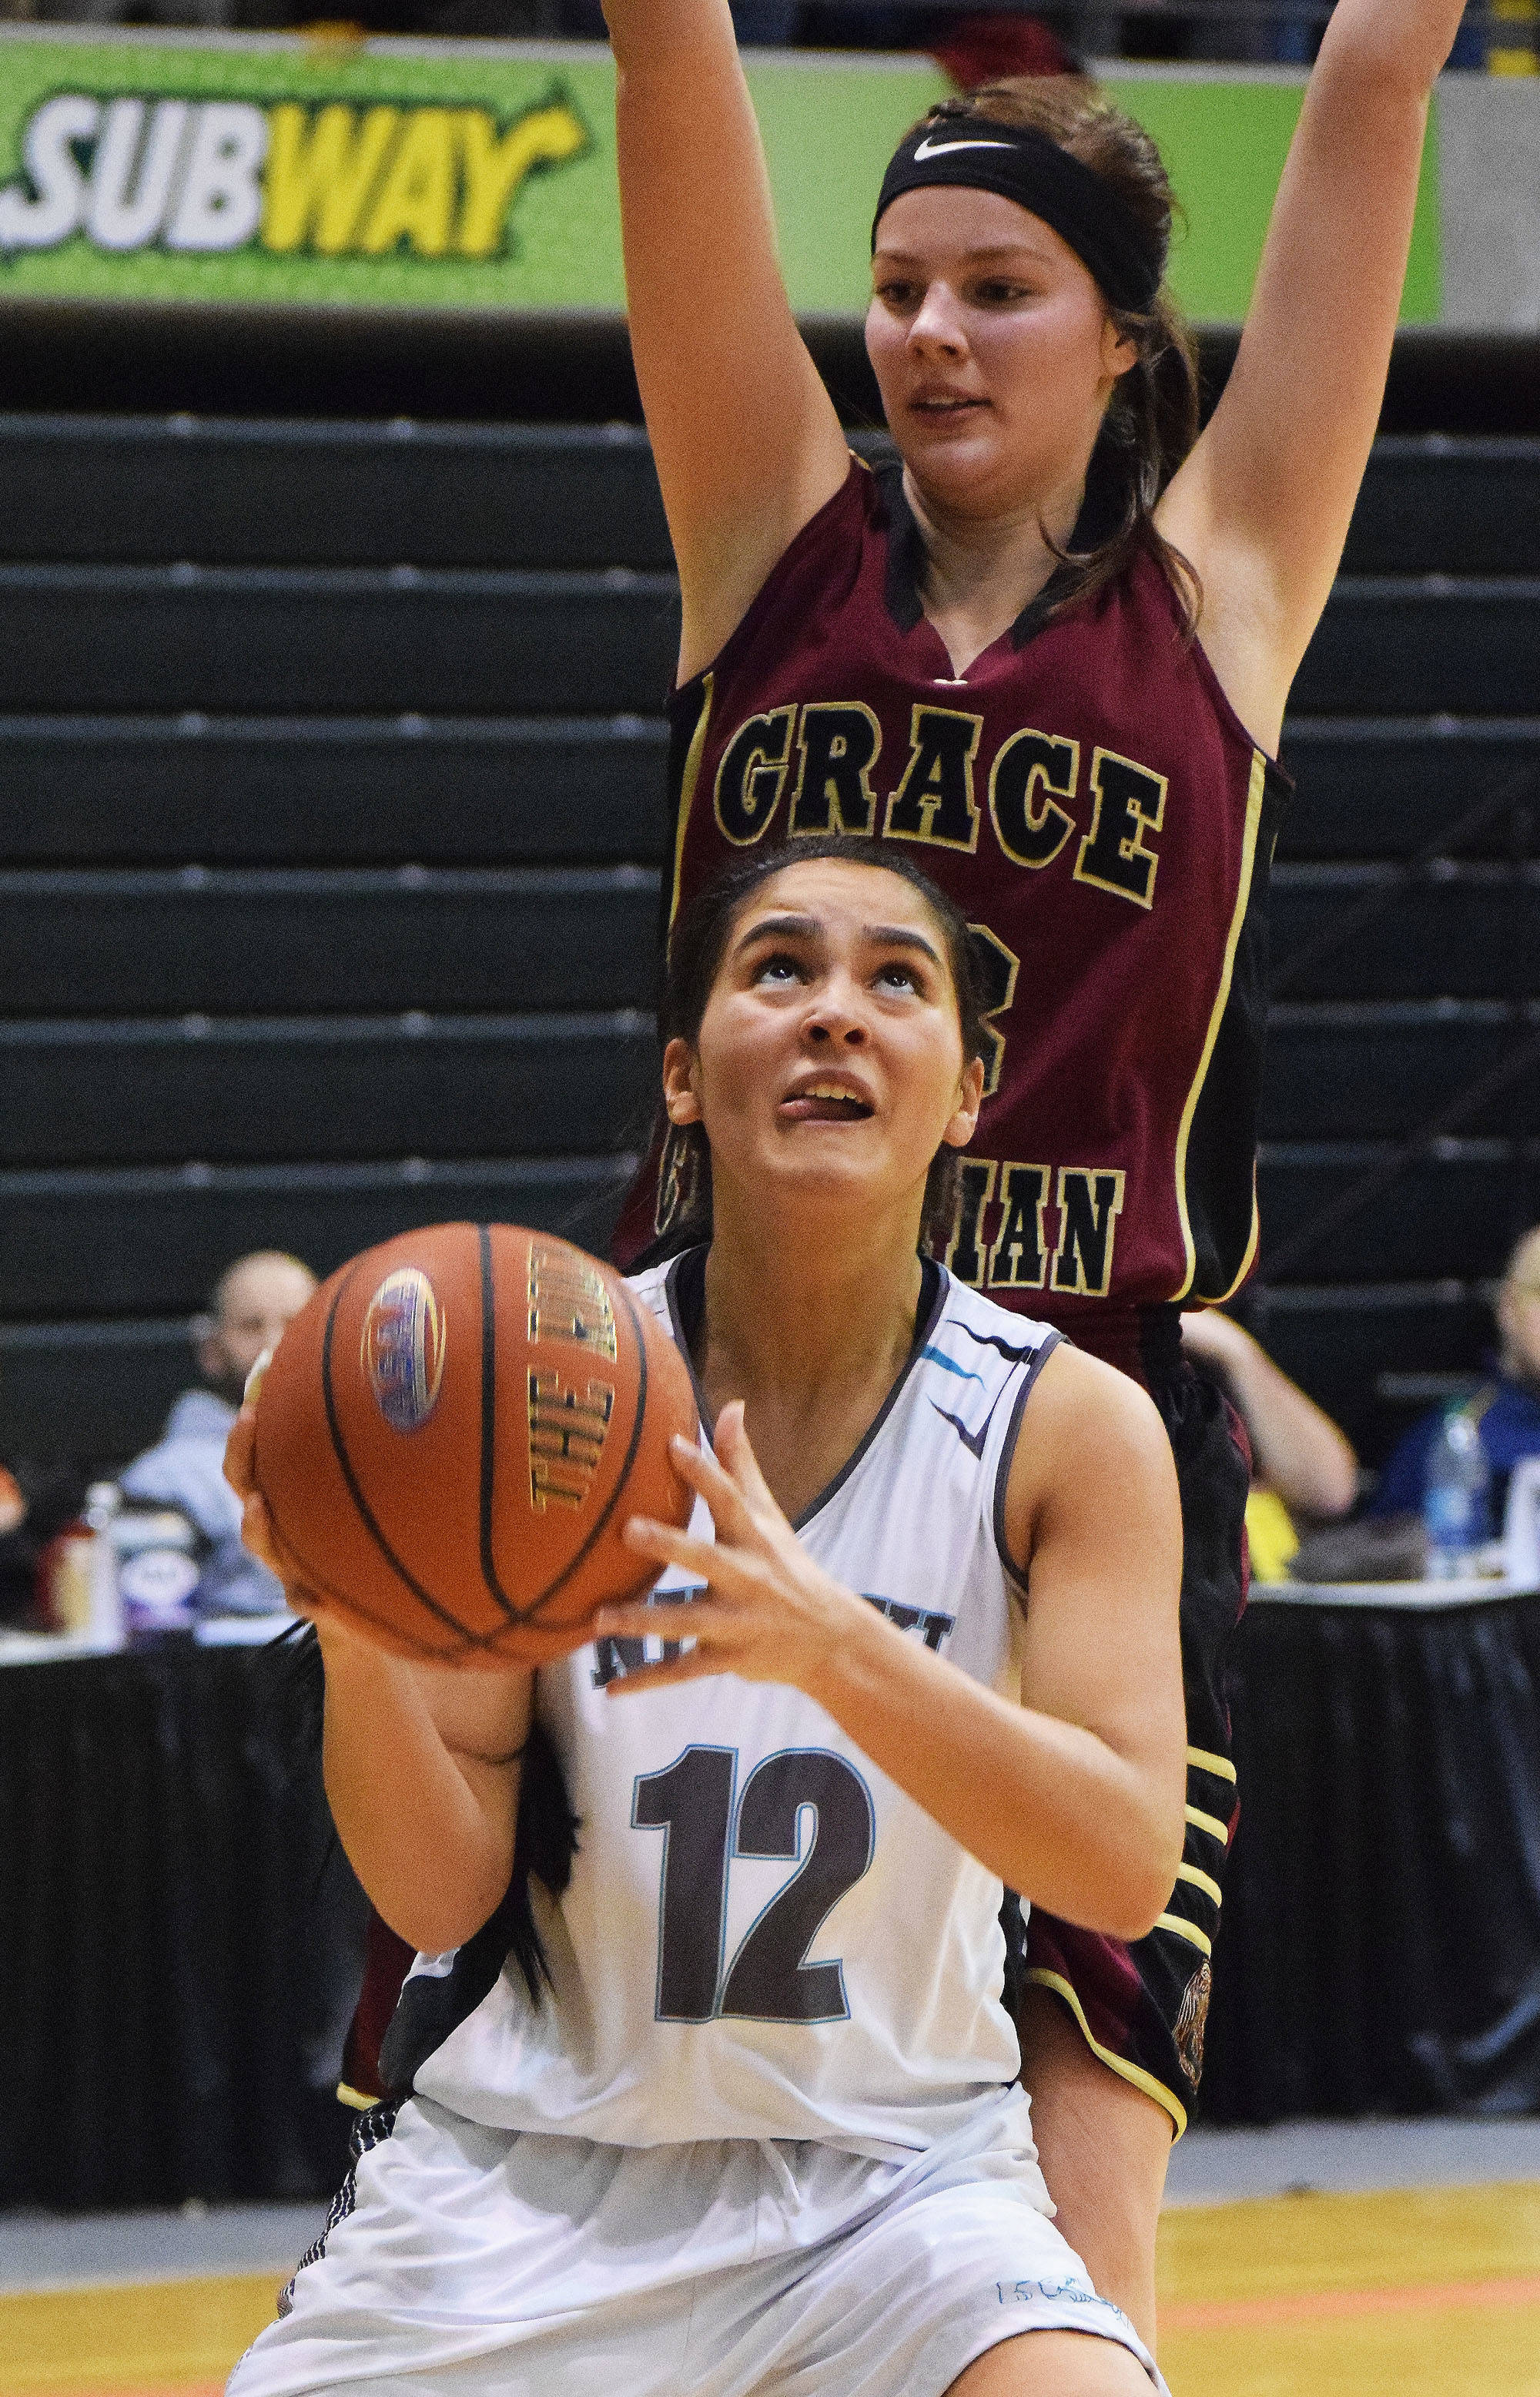 Nikiski's Brianna Vollertsen (12) looks for a shot against Grace Christian's Makenna Shamburger in the Class 3A state quarterfinal contest Thursday, March 23, 2017, at the Alaska Airlines Center in Anchorage. (Photo by Joey Klecka/Peninsula Clarion)